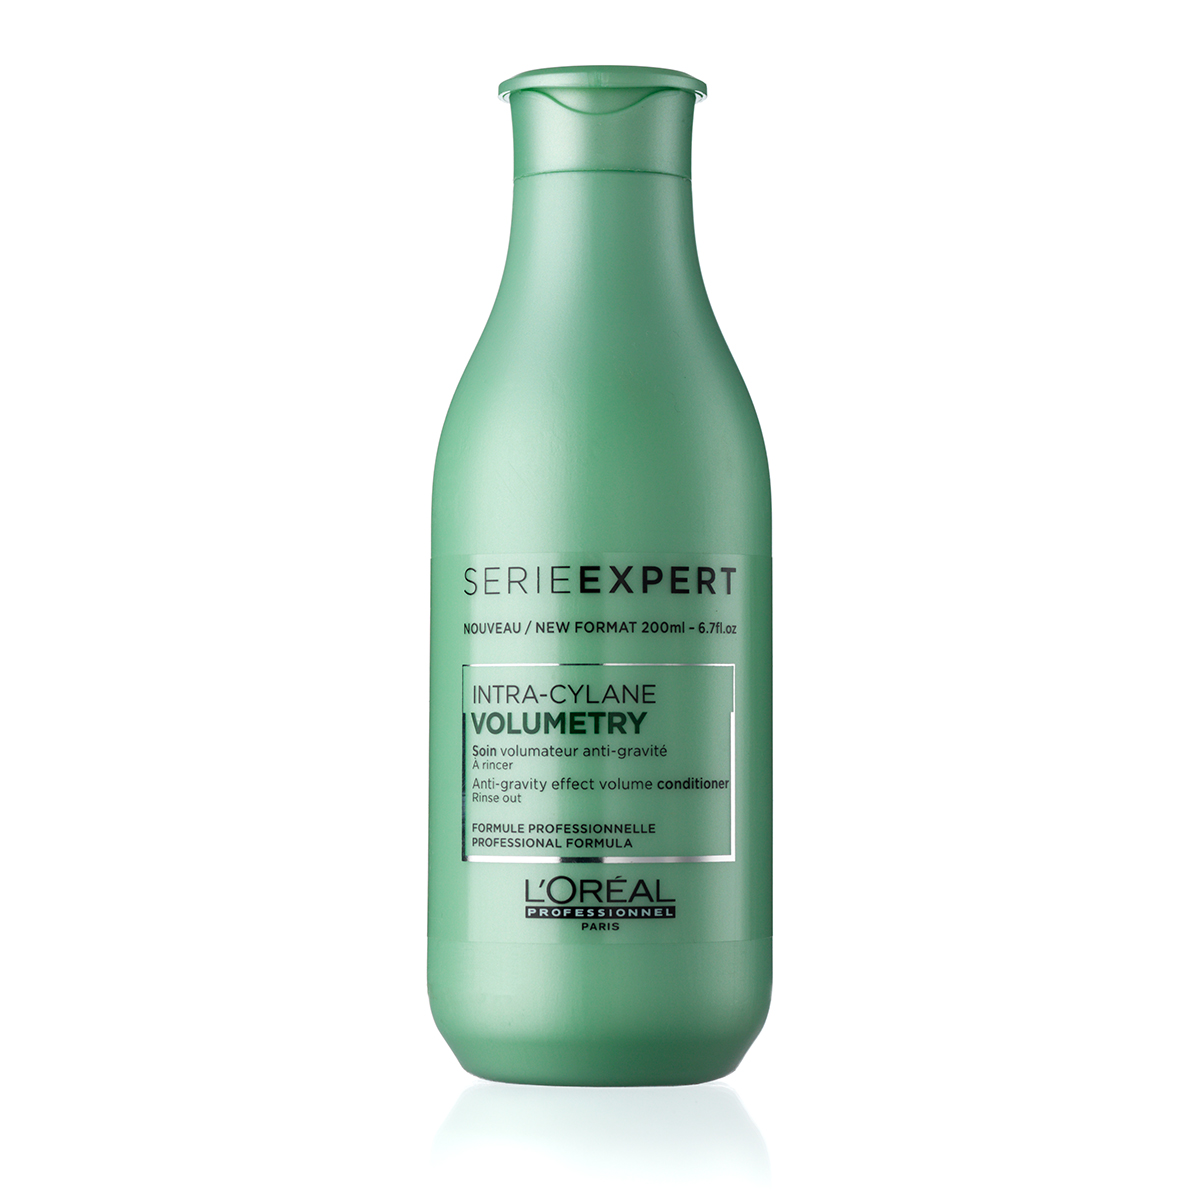 LOréal Série expert Volumentry Intra-Cylane Conditioner - 200 ml